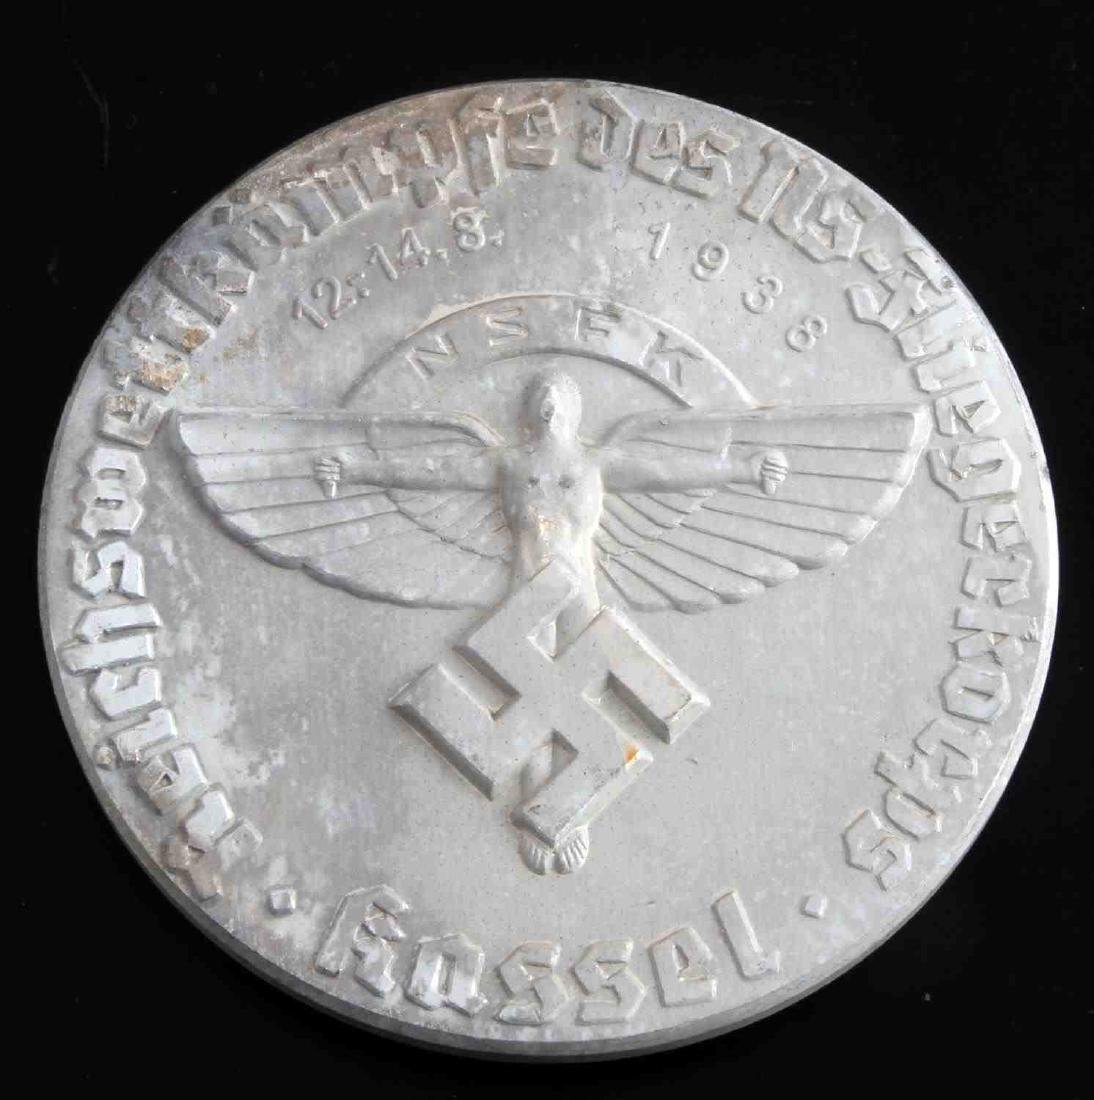 WWII THIRD REICH GERMAN NSFK 1938 TABLE AWARD